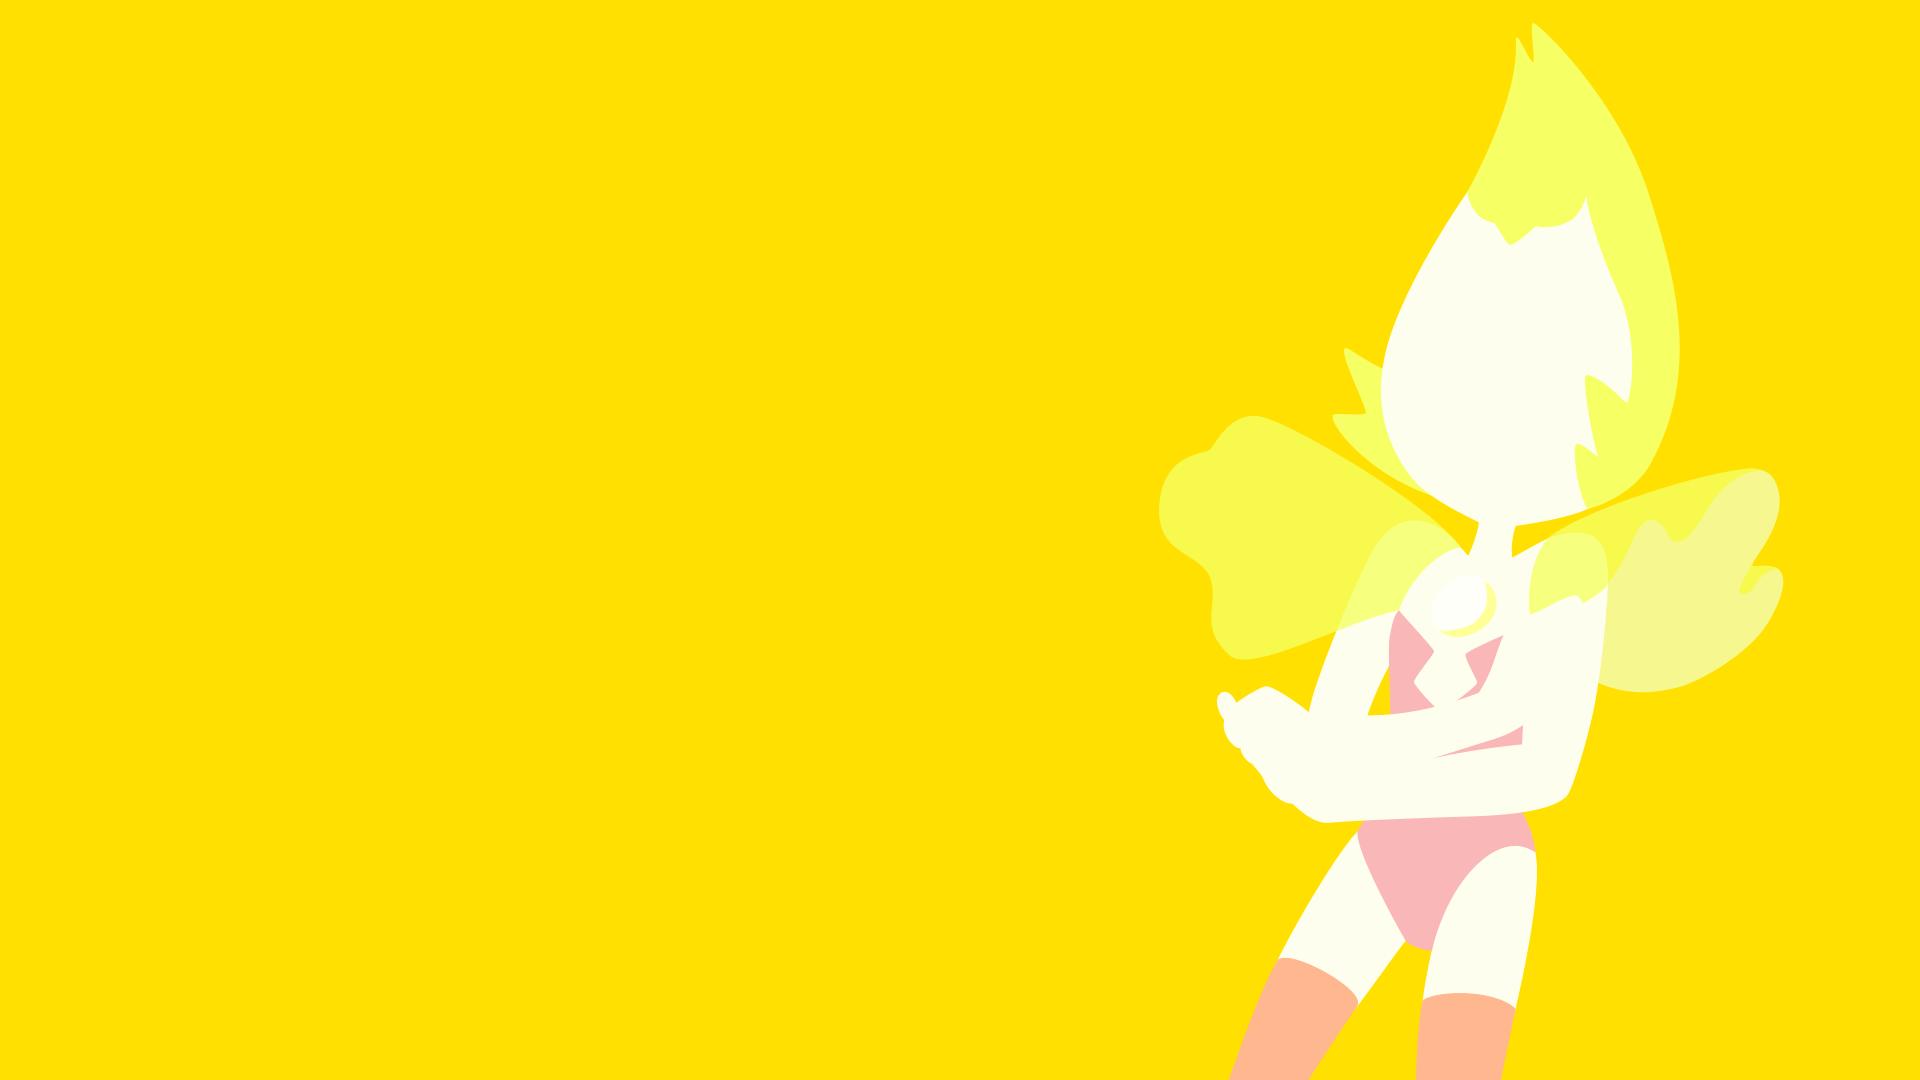 Yellow Pearl vector wallpaper by CaptainBeans on DeviantArt